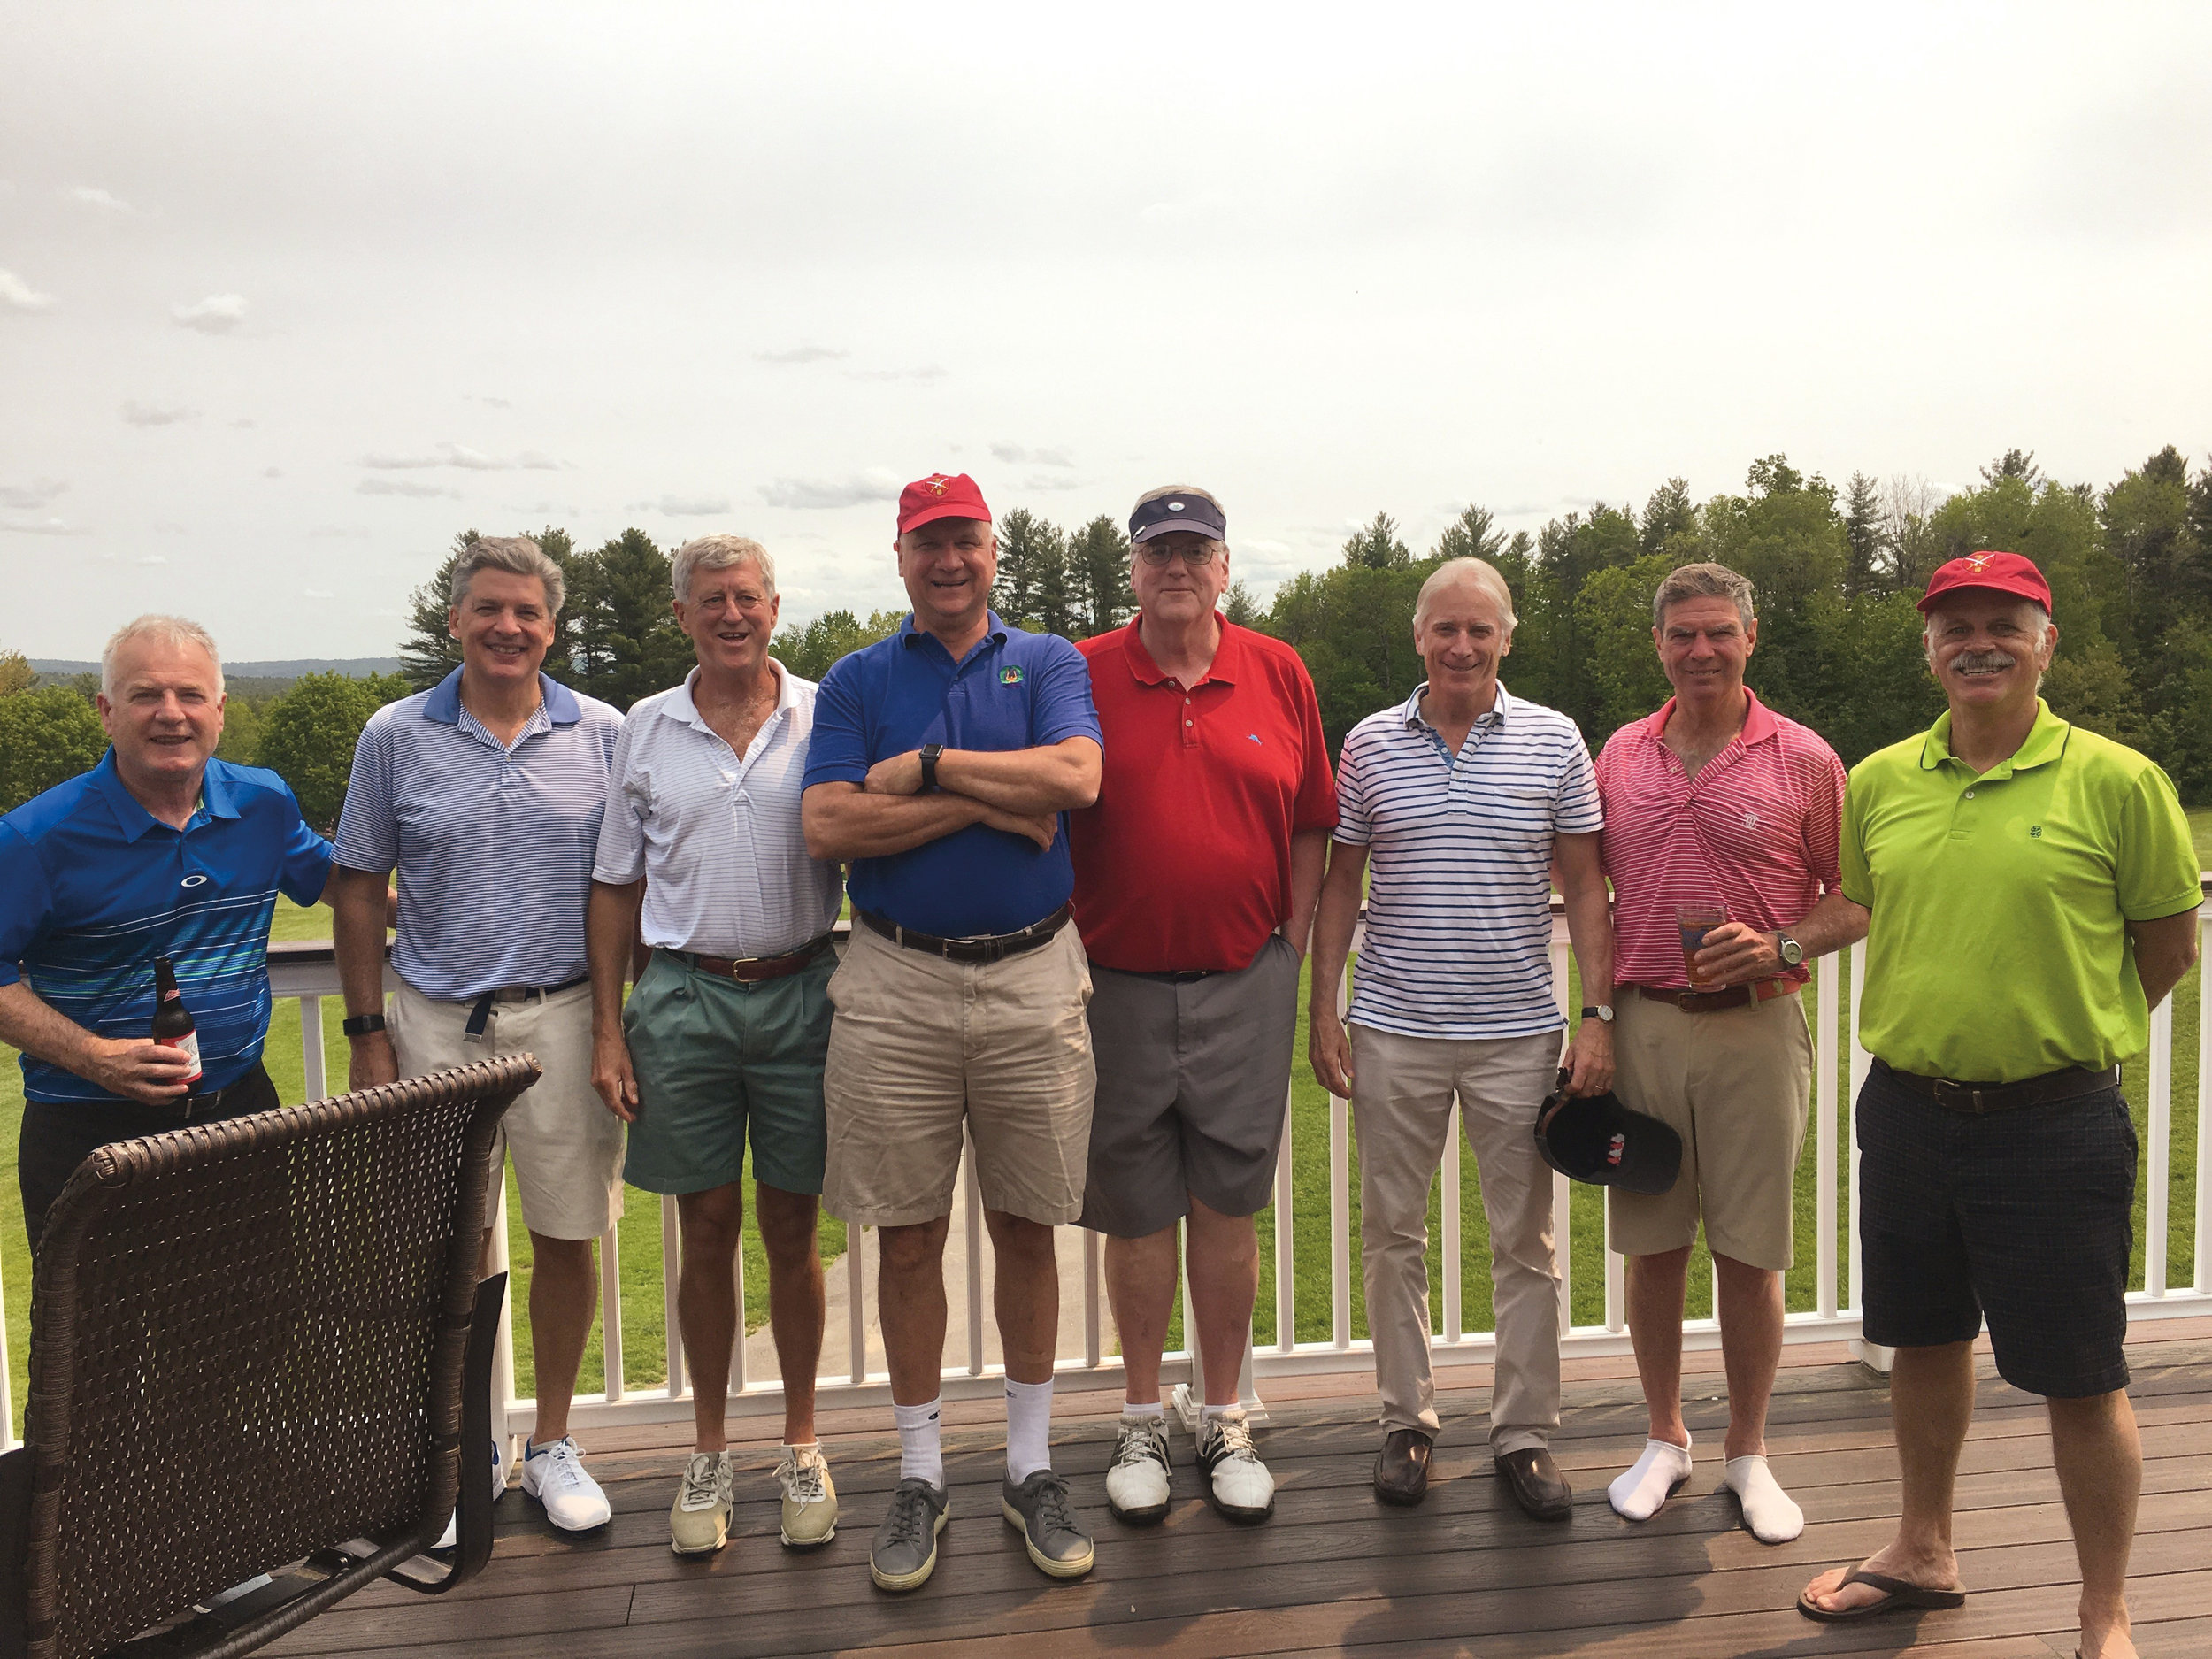 Members of the Form of 1974 (l. to r.): Tom Painchaud, KC King, Pete Bostwick, Chris Rulon-Miller, John Sullivan, Phil Laird, Jeff Randall, and David Clark on an Anniversary Weekend golf outing.